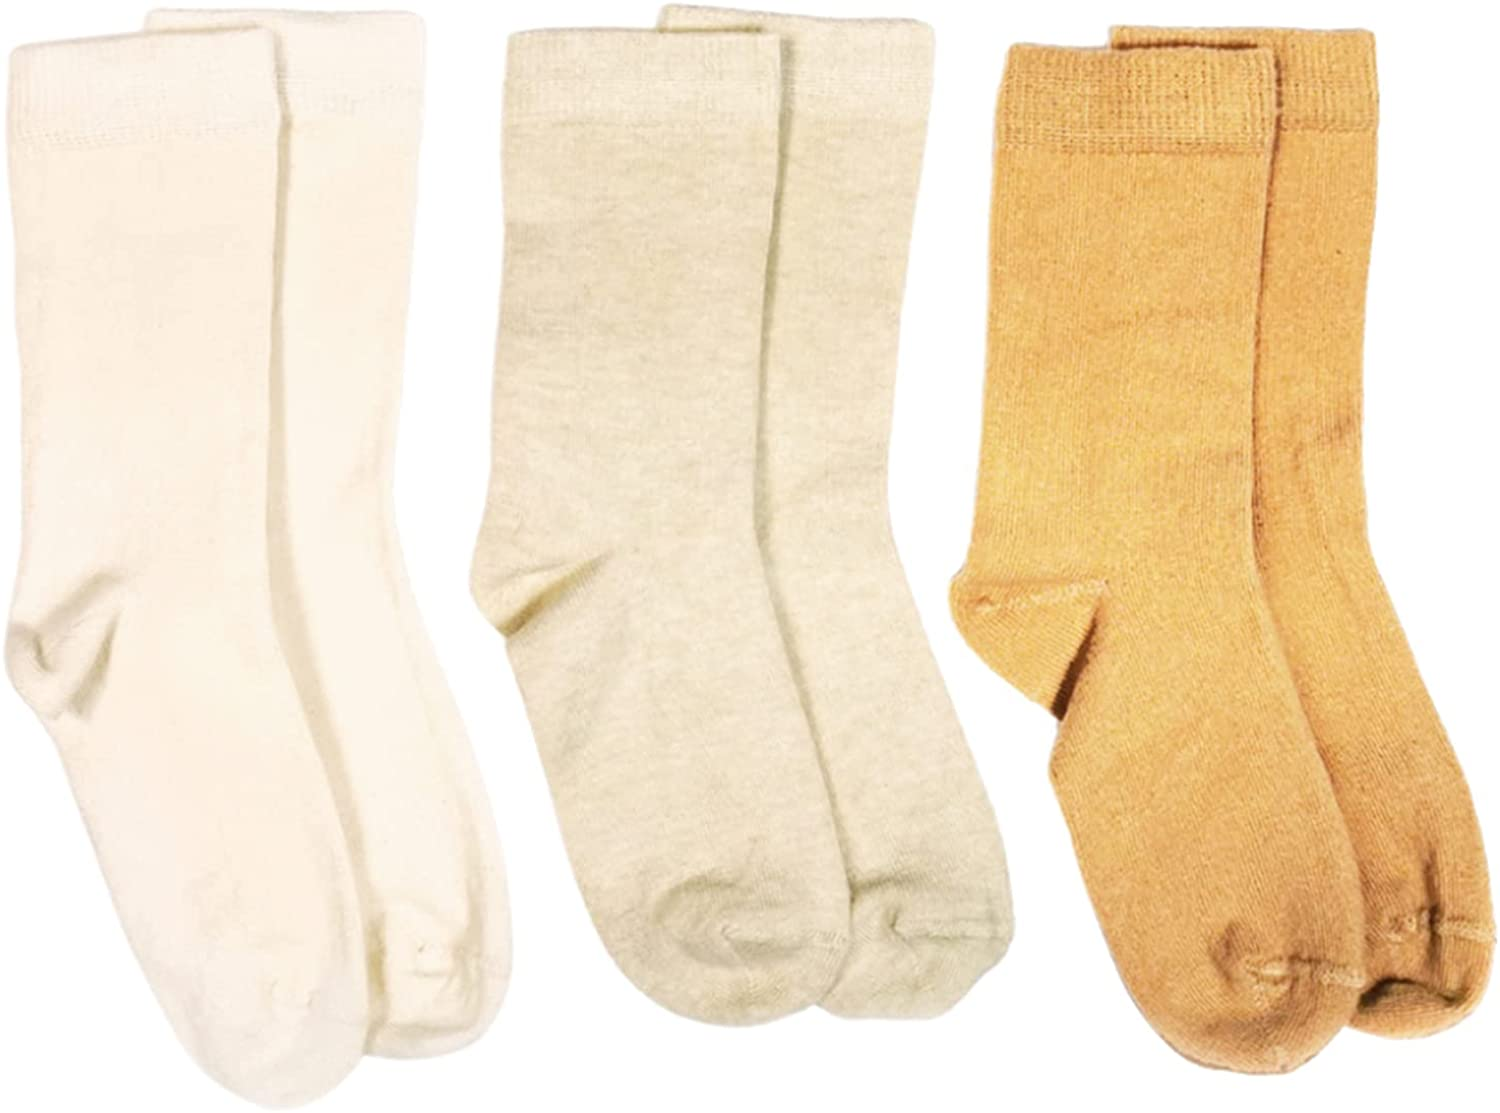 Q for Quinn 3 Count Organic Pure No Dye Toddler, Baby, Kids Socks | 3 Natural Colors